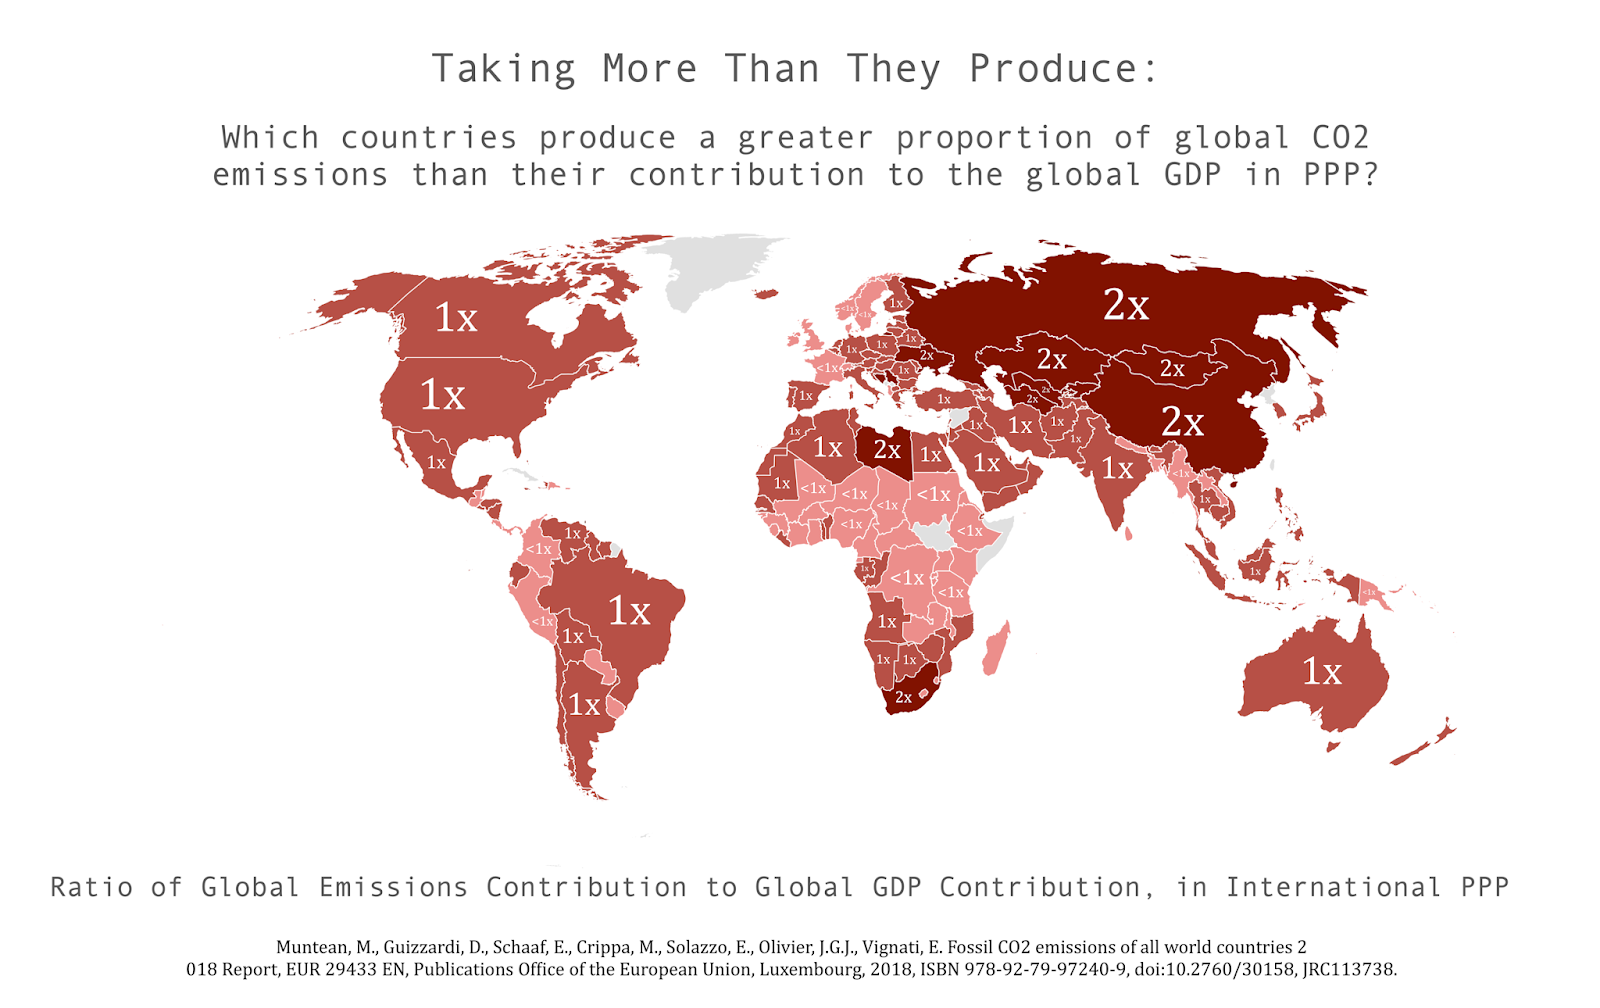 Ratio of global emission to global GDP contribution in international PPP